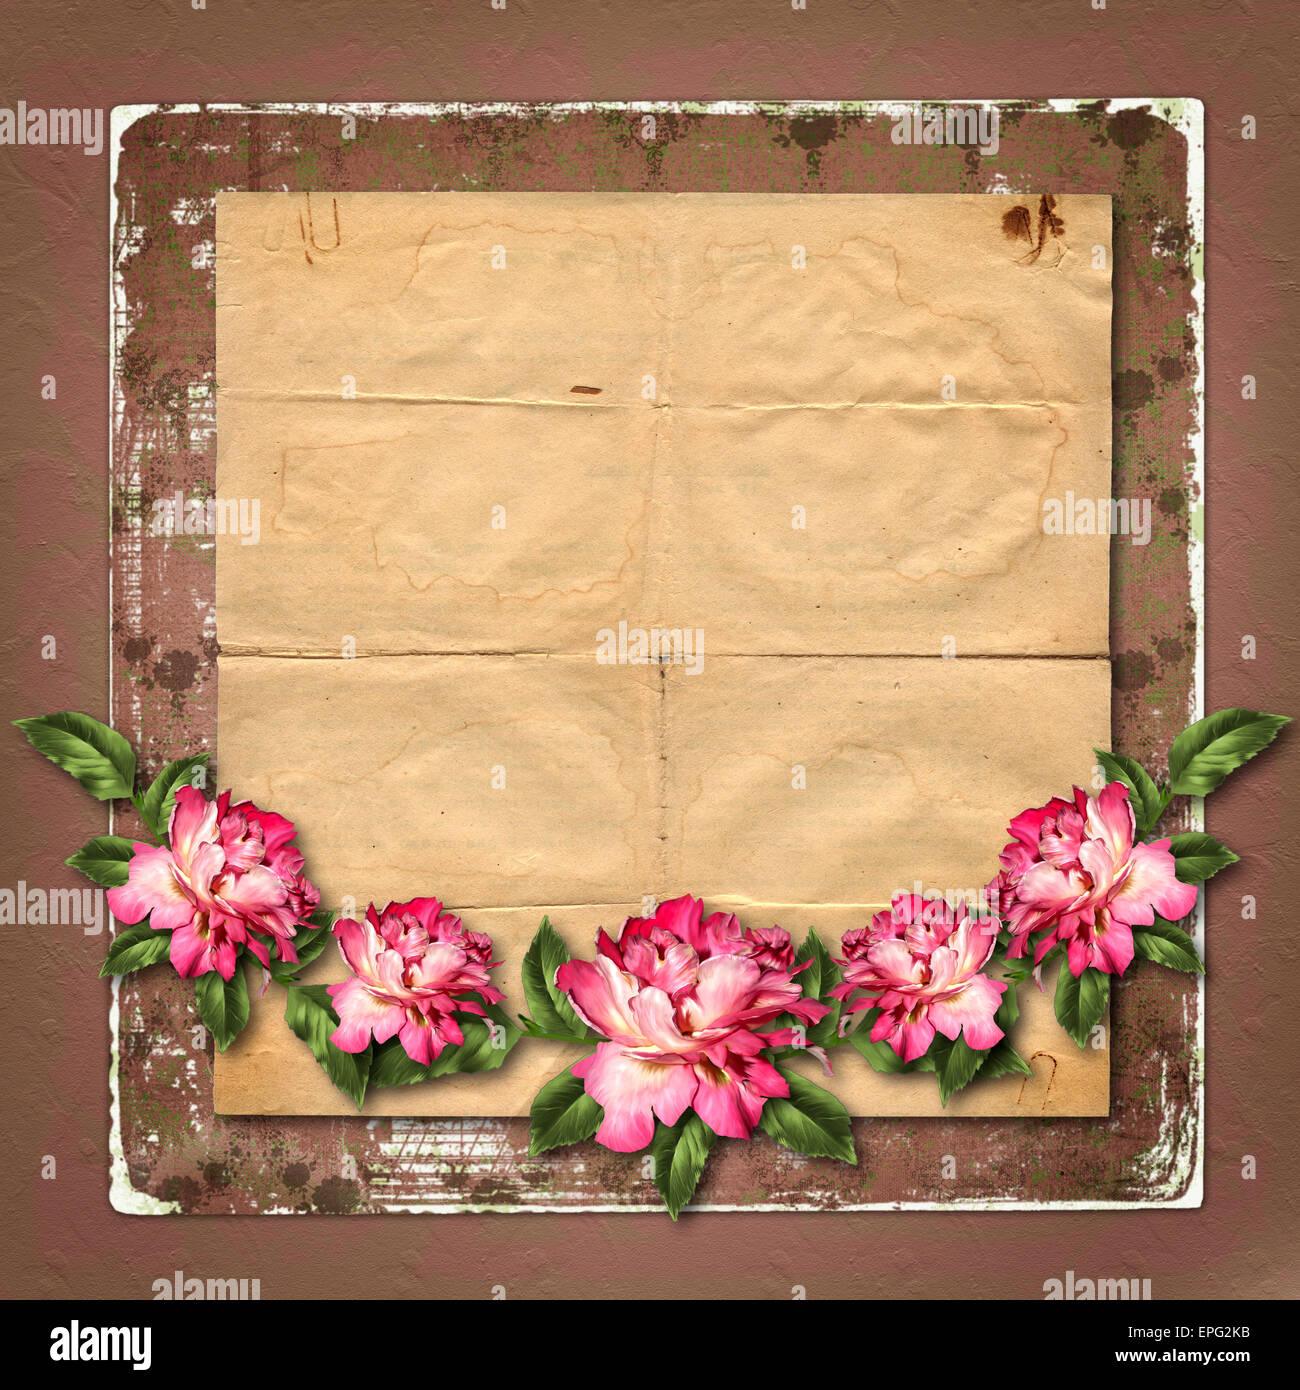 Beautiful painted rose with frames for congratulations or invitation beautiful painted rose with frames for congratulations or invitation on abstract background izmirmasajfo